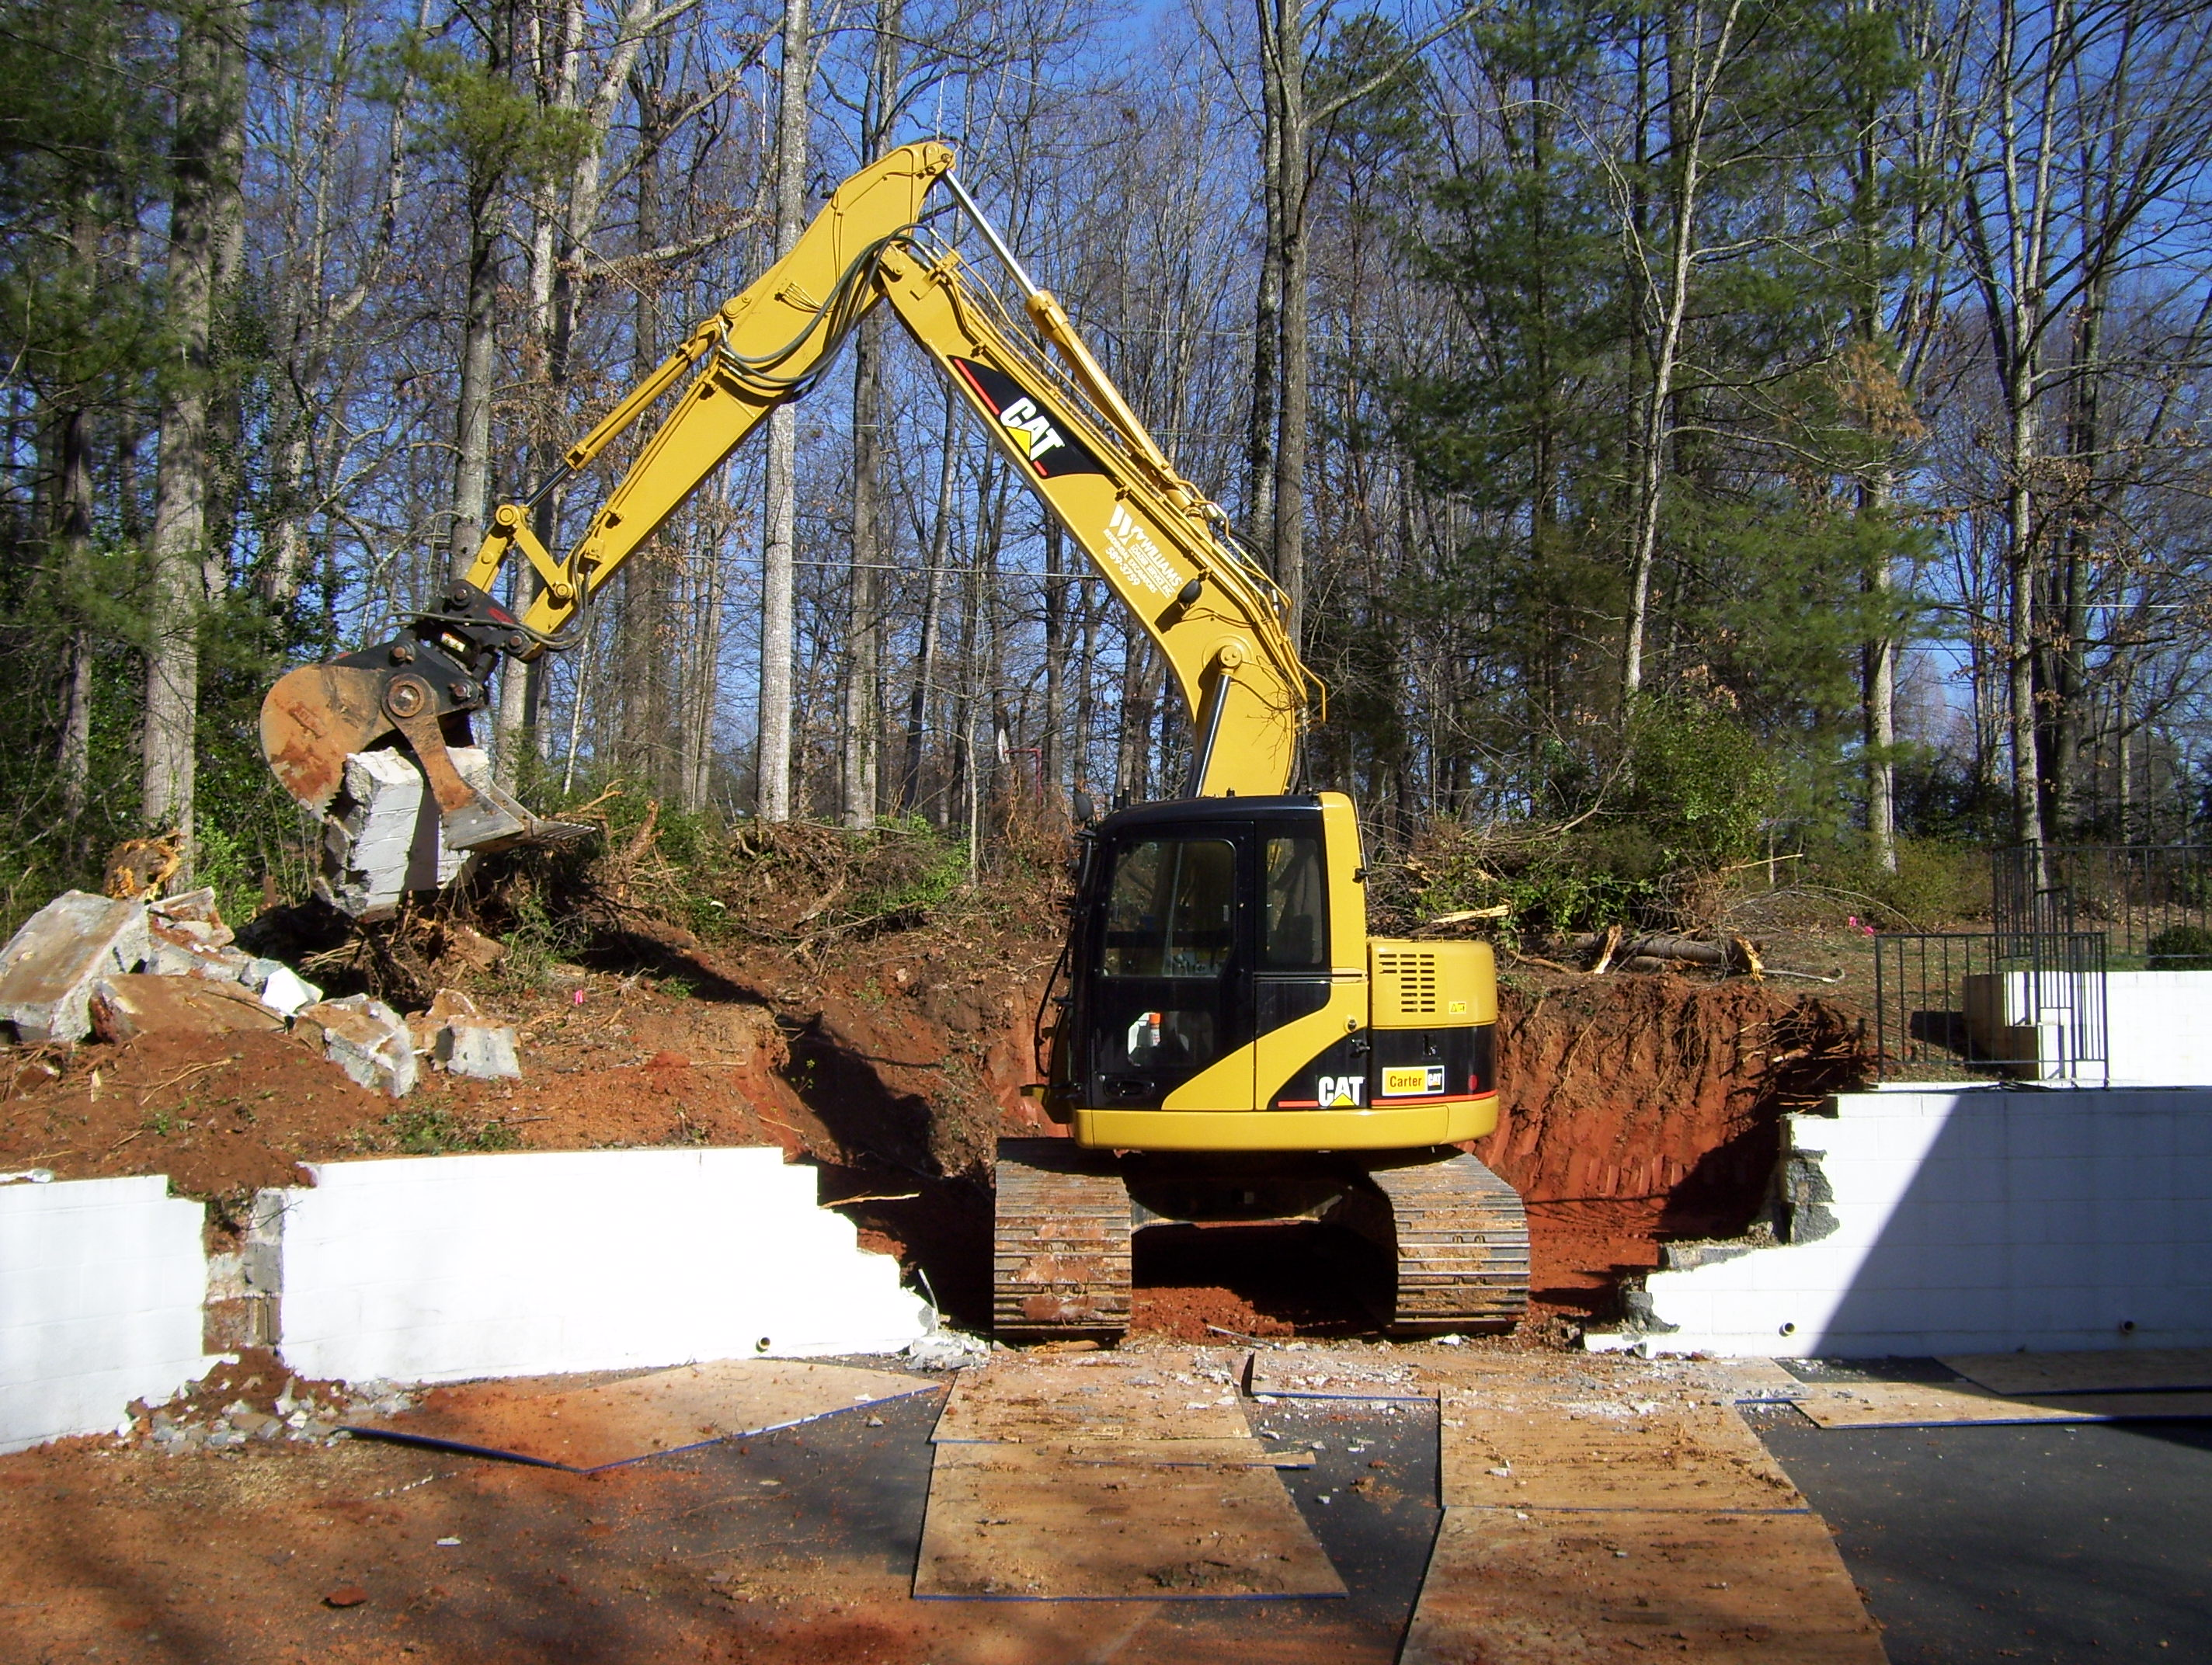 Retaining wall demolition